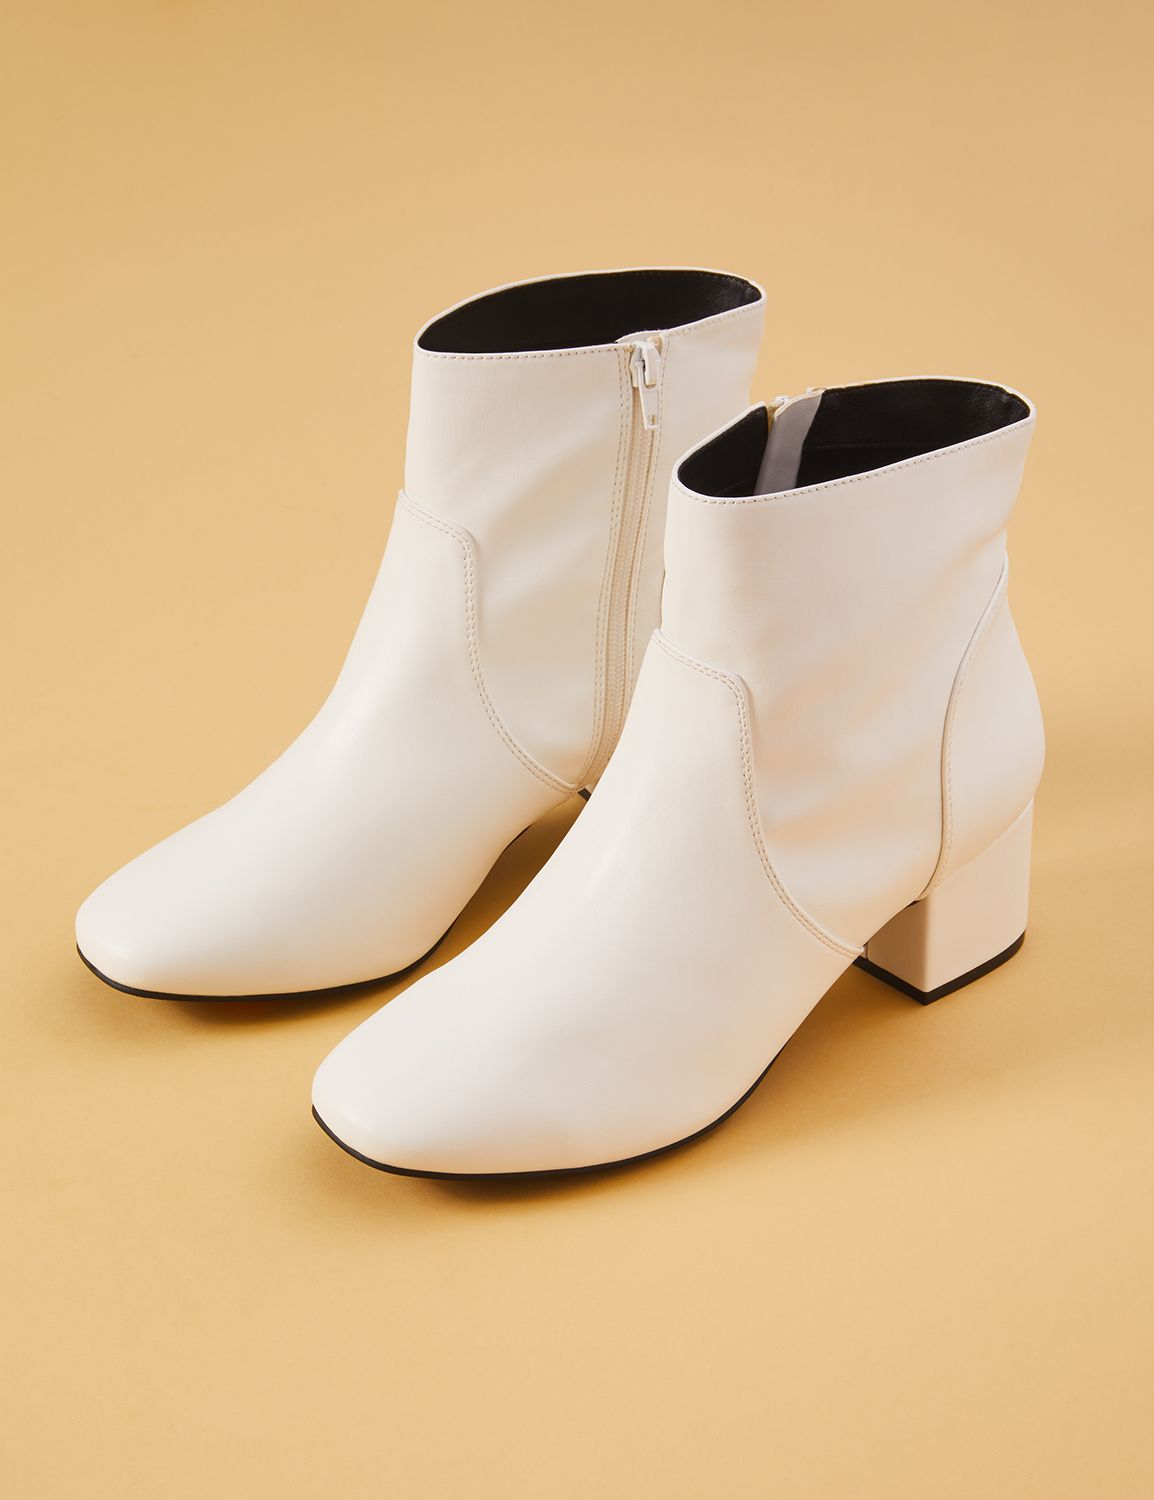 Vintage Style Shoes, Vintage Inspired Shoes Lane Bryant Womens White Faux Leather Ankle Boot 12W White $62.99 AT vintagedancer.com